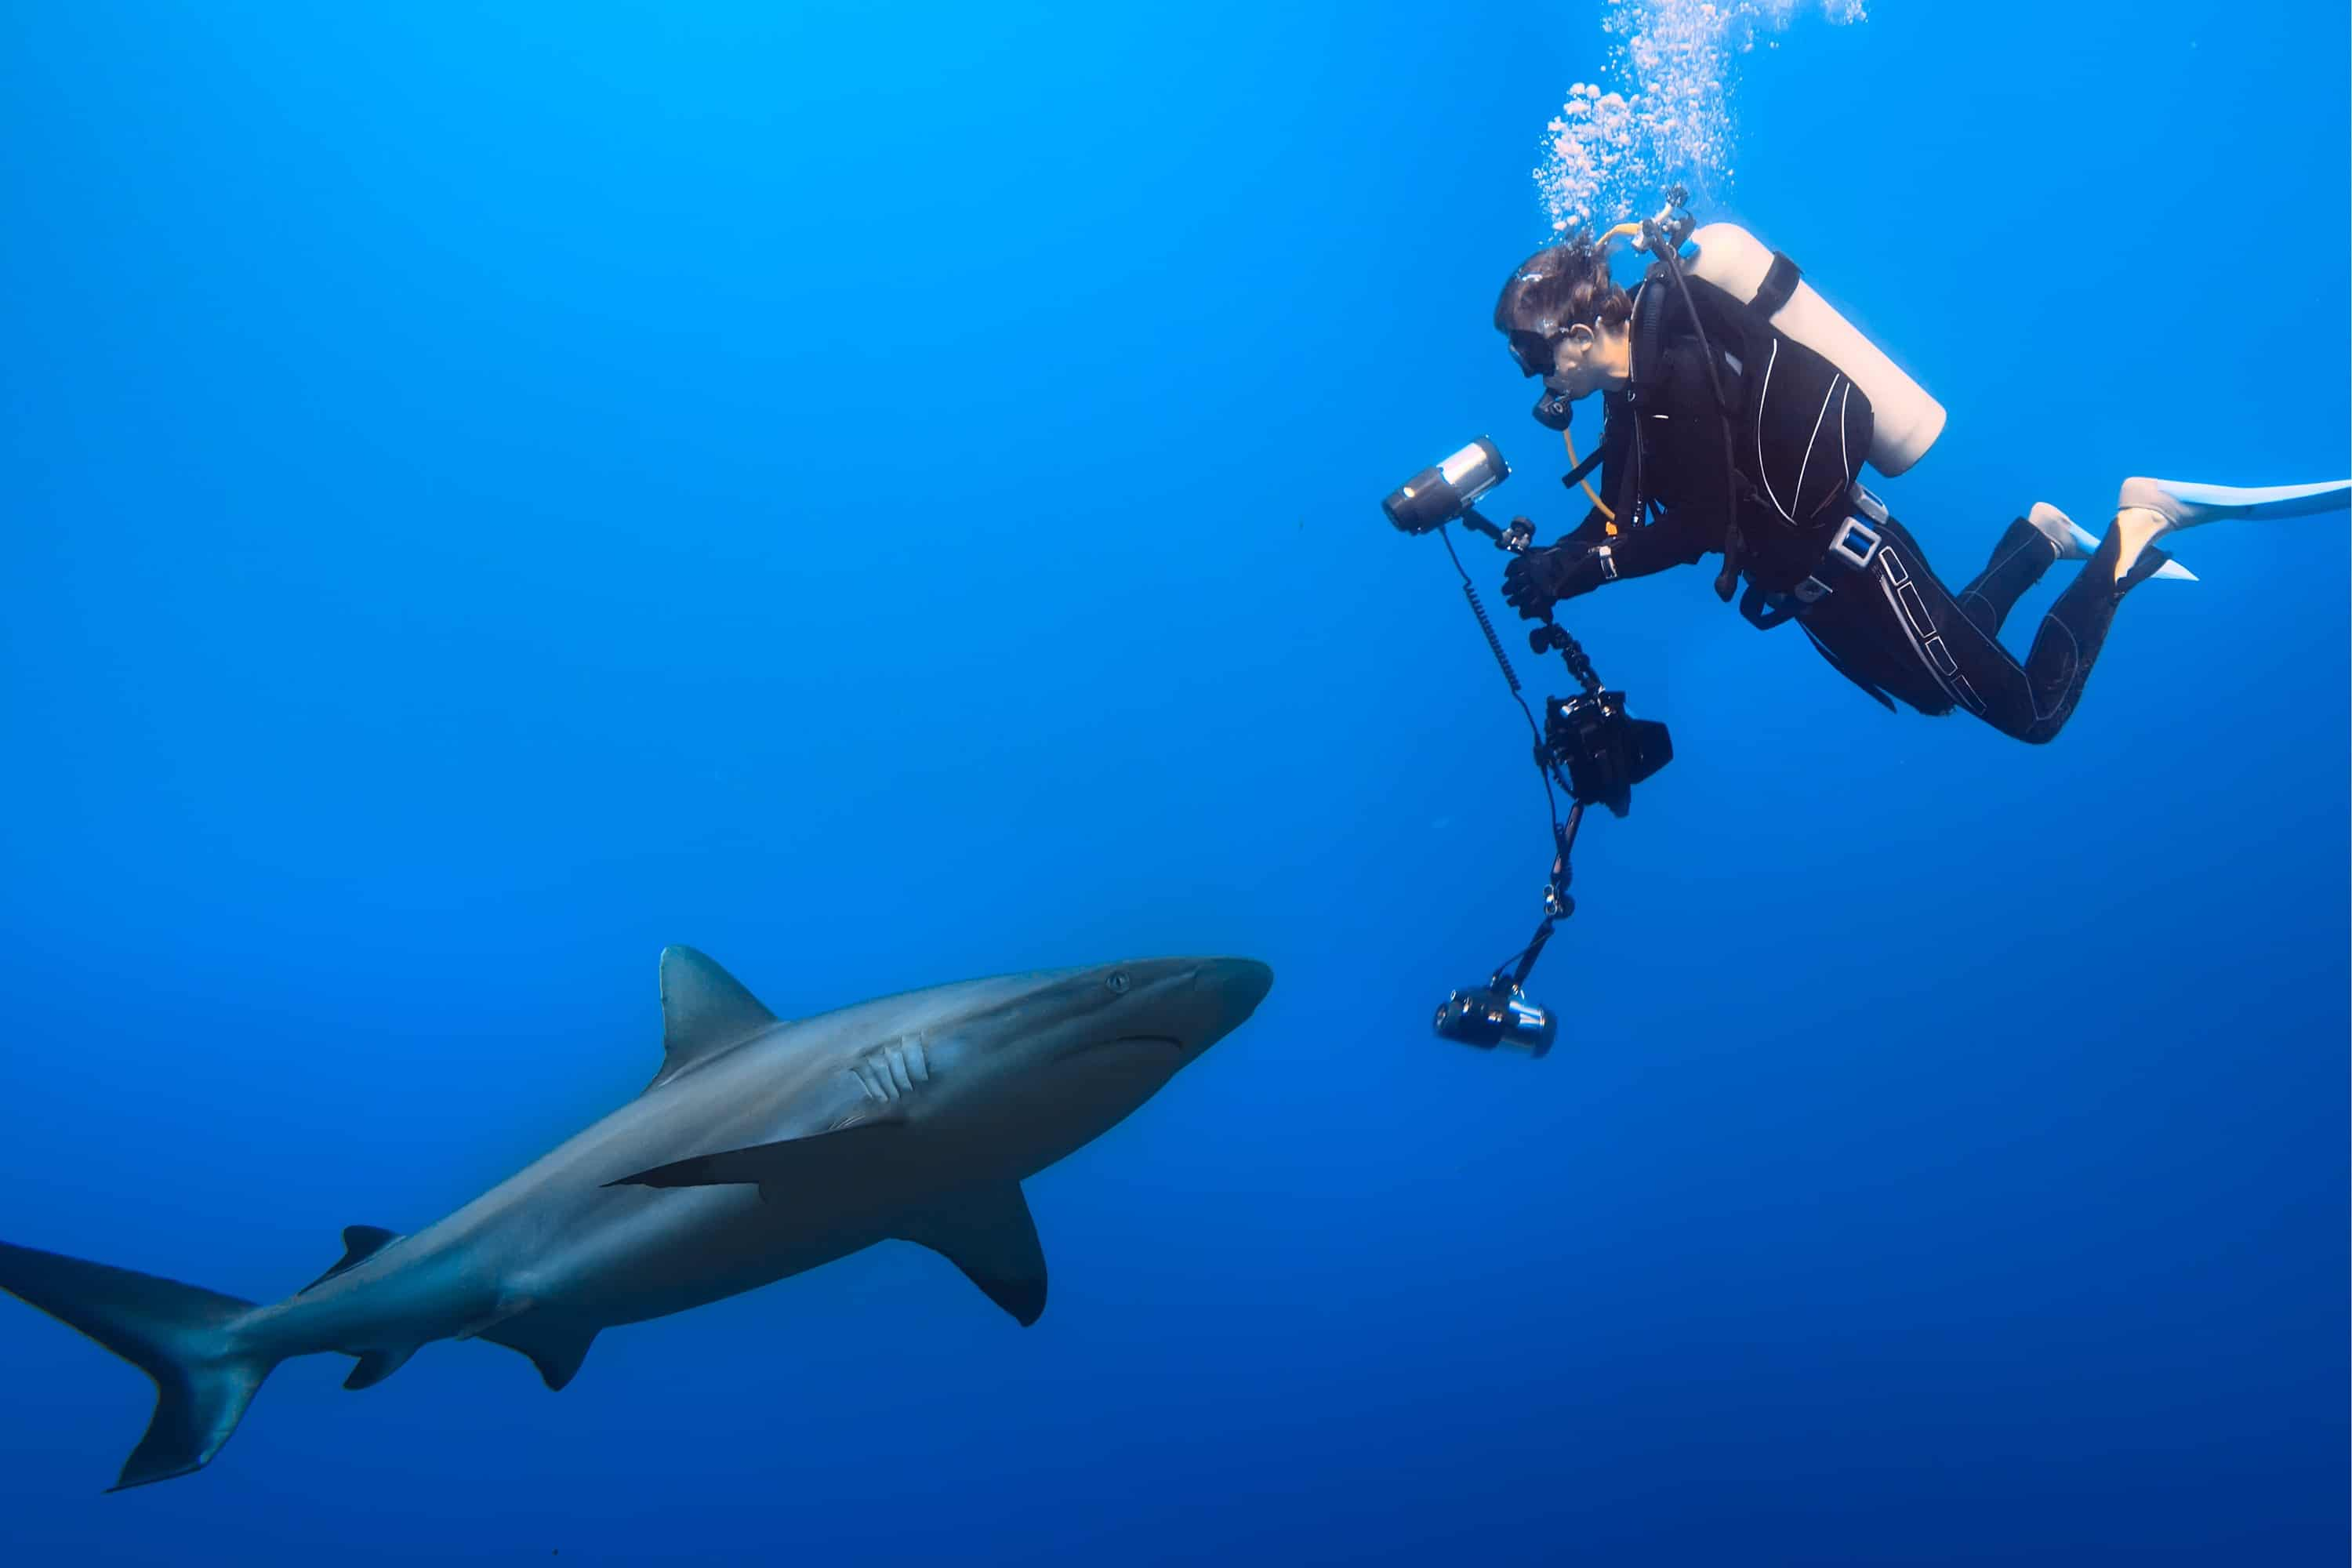 cybersecurity risk assessment diver shark